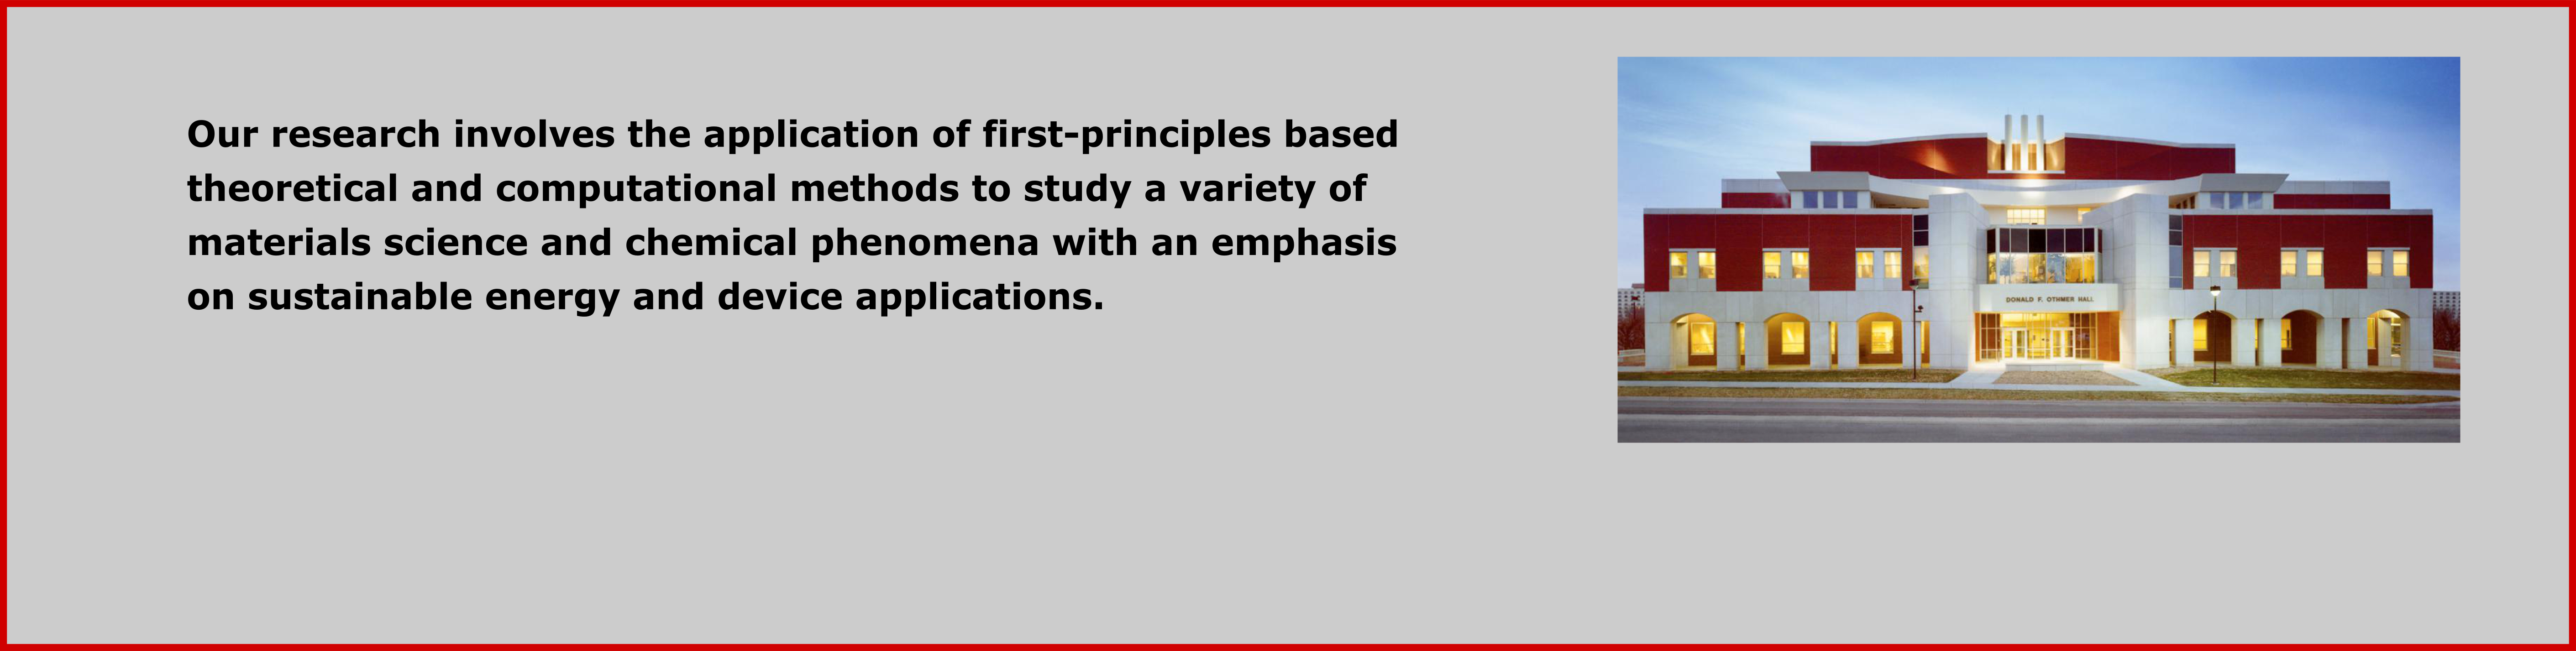 Our research involves the application of first-principles based theoretical and computational methods of study.